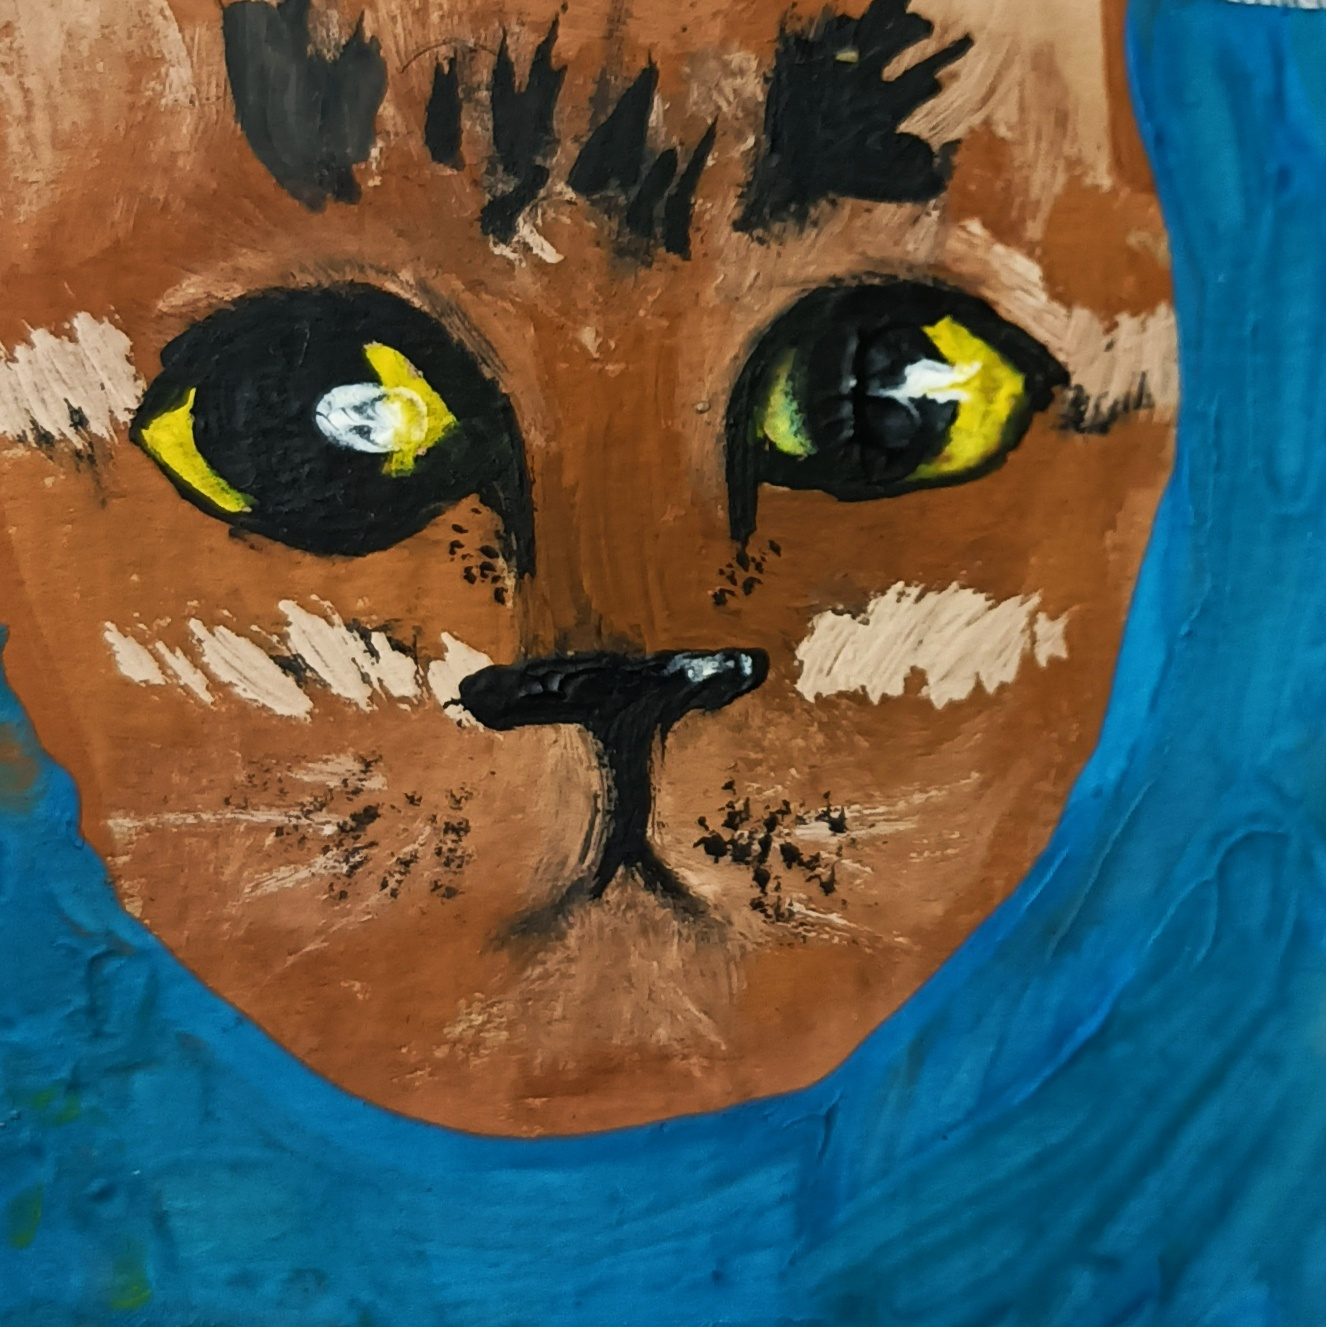 Miniatures of cats - beautiful pictures in the style of impressionism